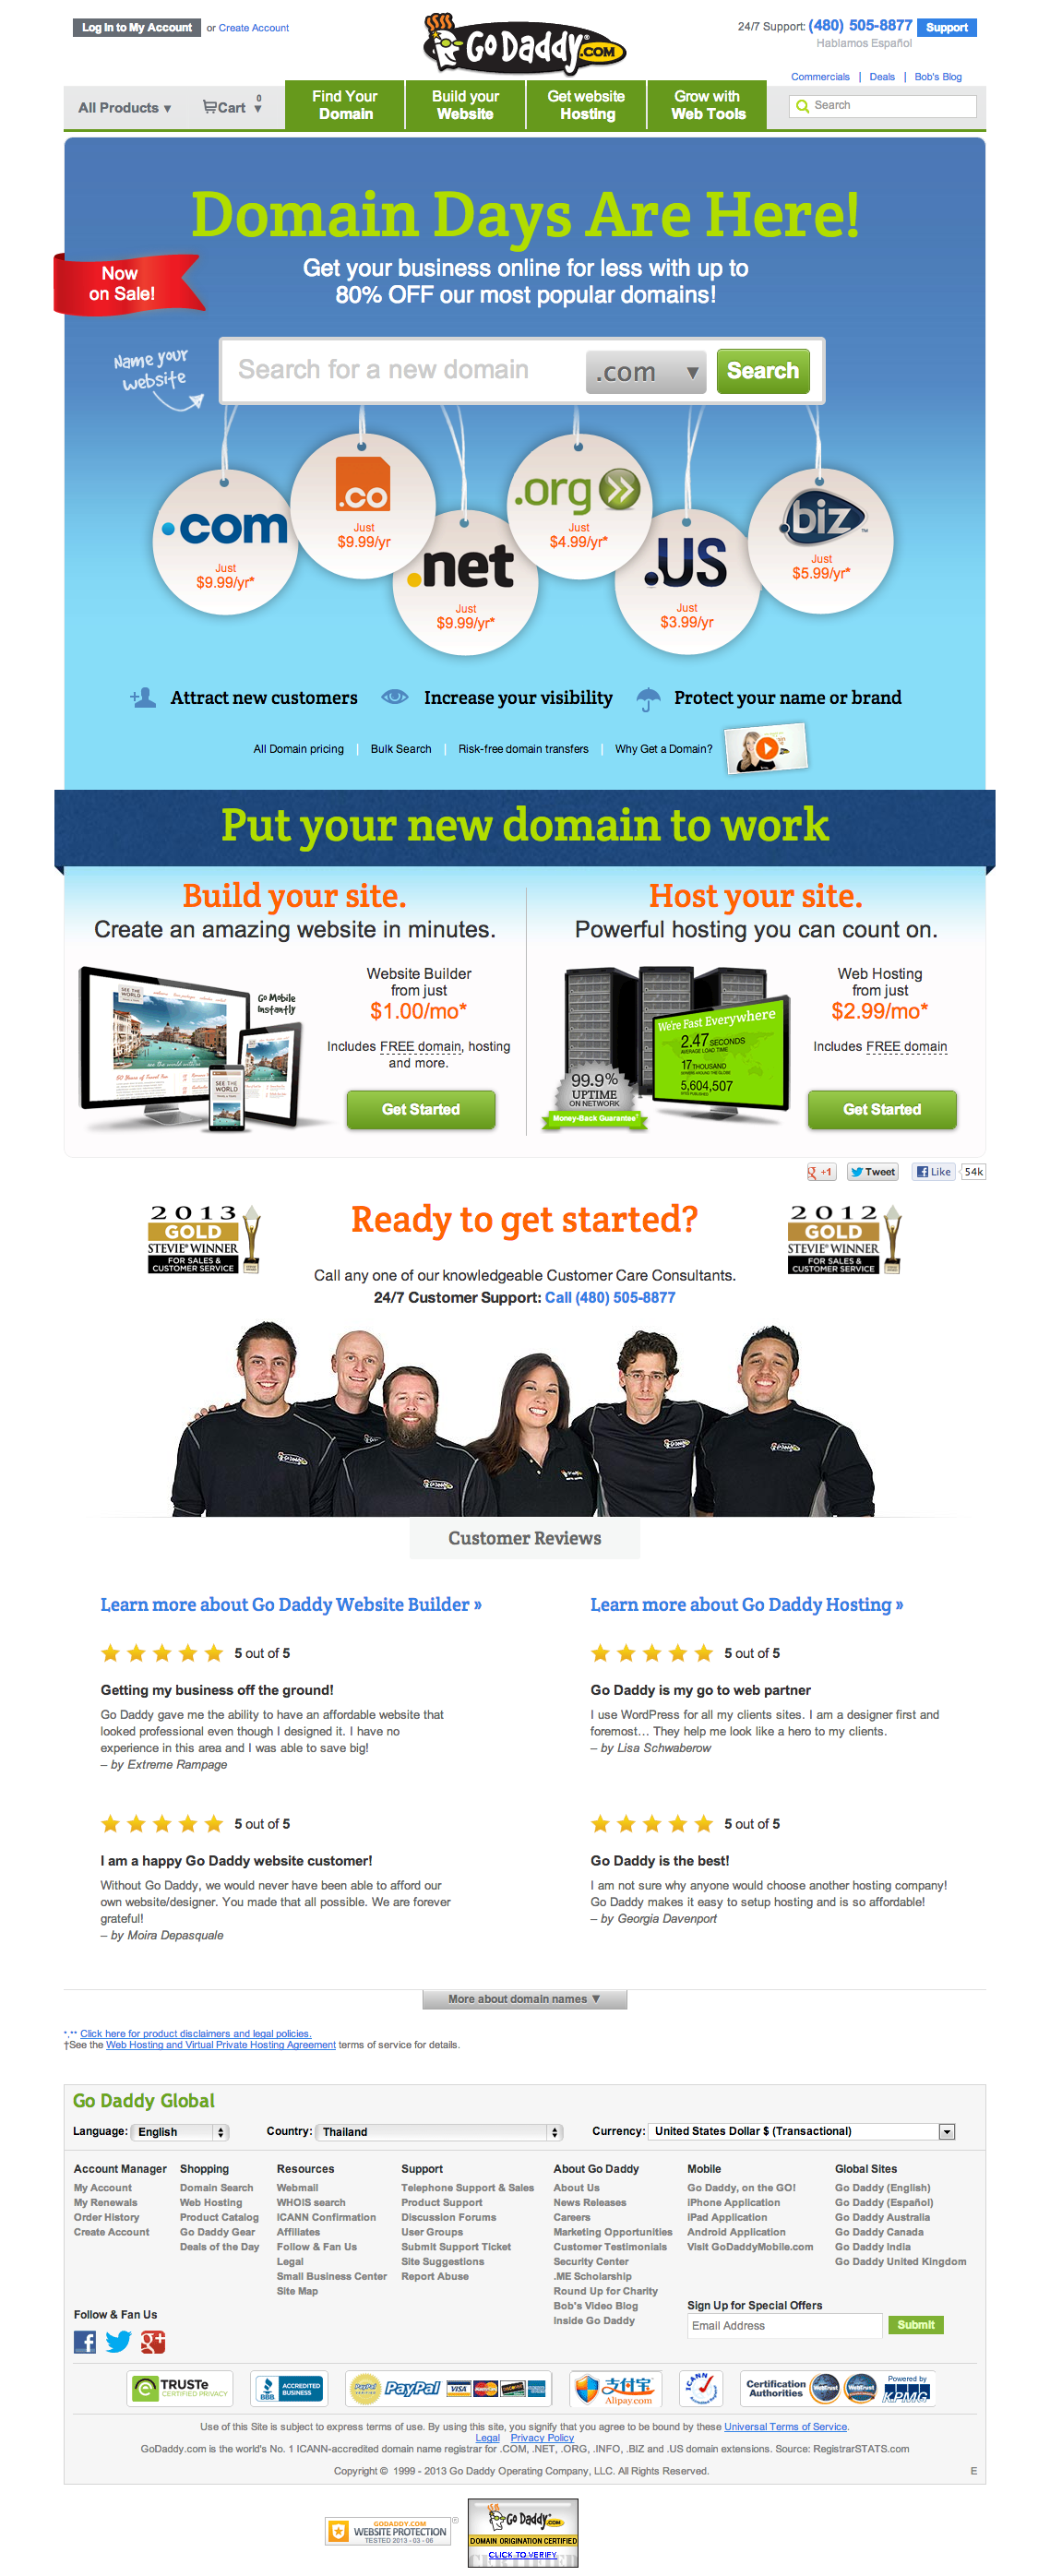 Domain Names The World's Largest Domain Name Registrar